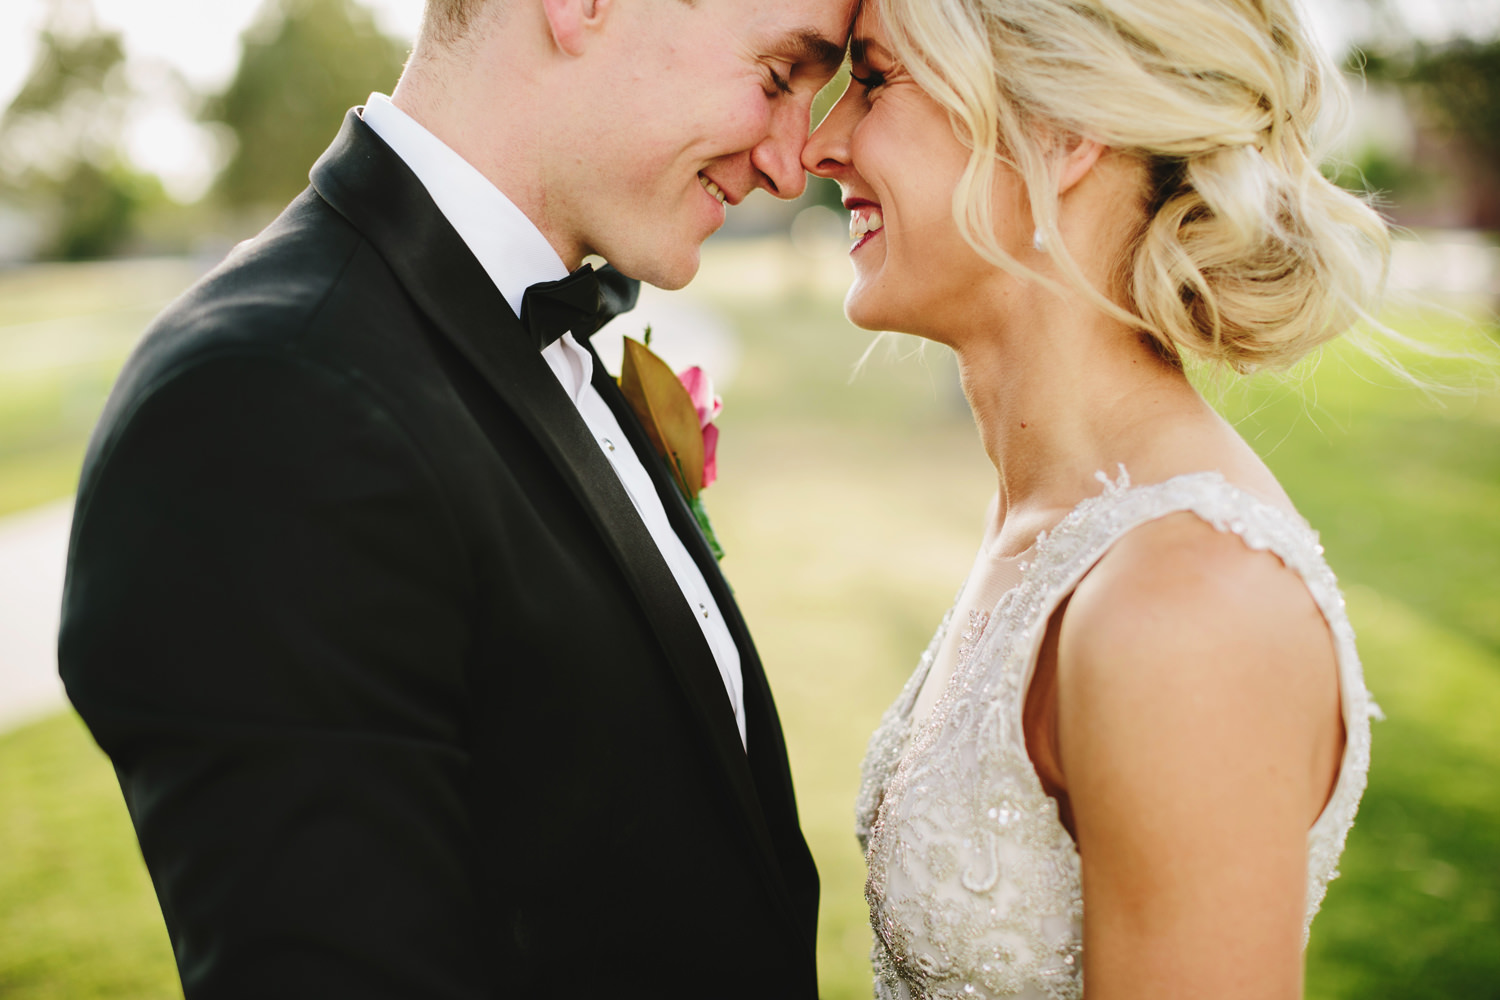 091-Melbourne_Wedding_Photographer_Jonathan_Ong_Best2015.jpg